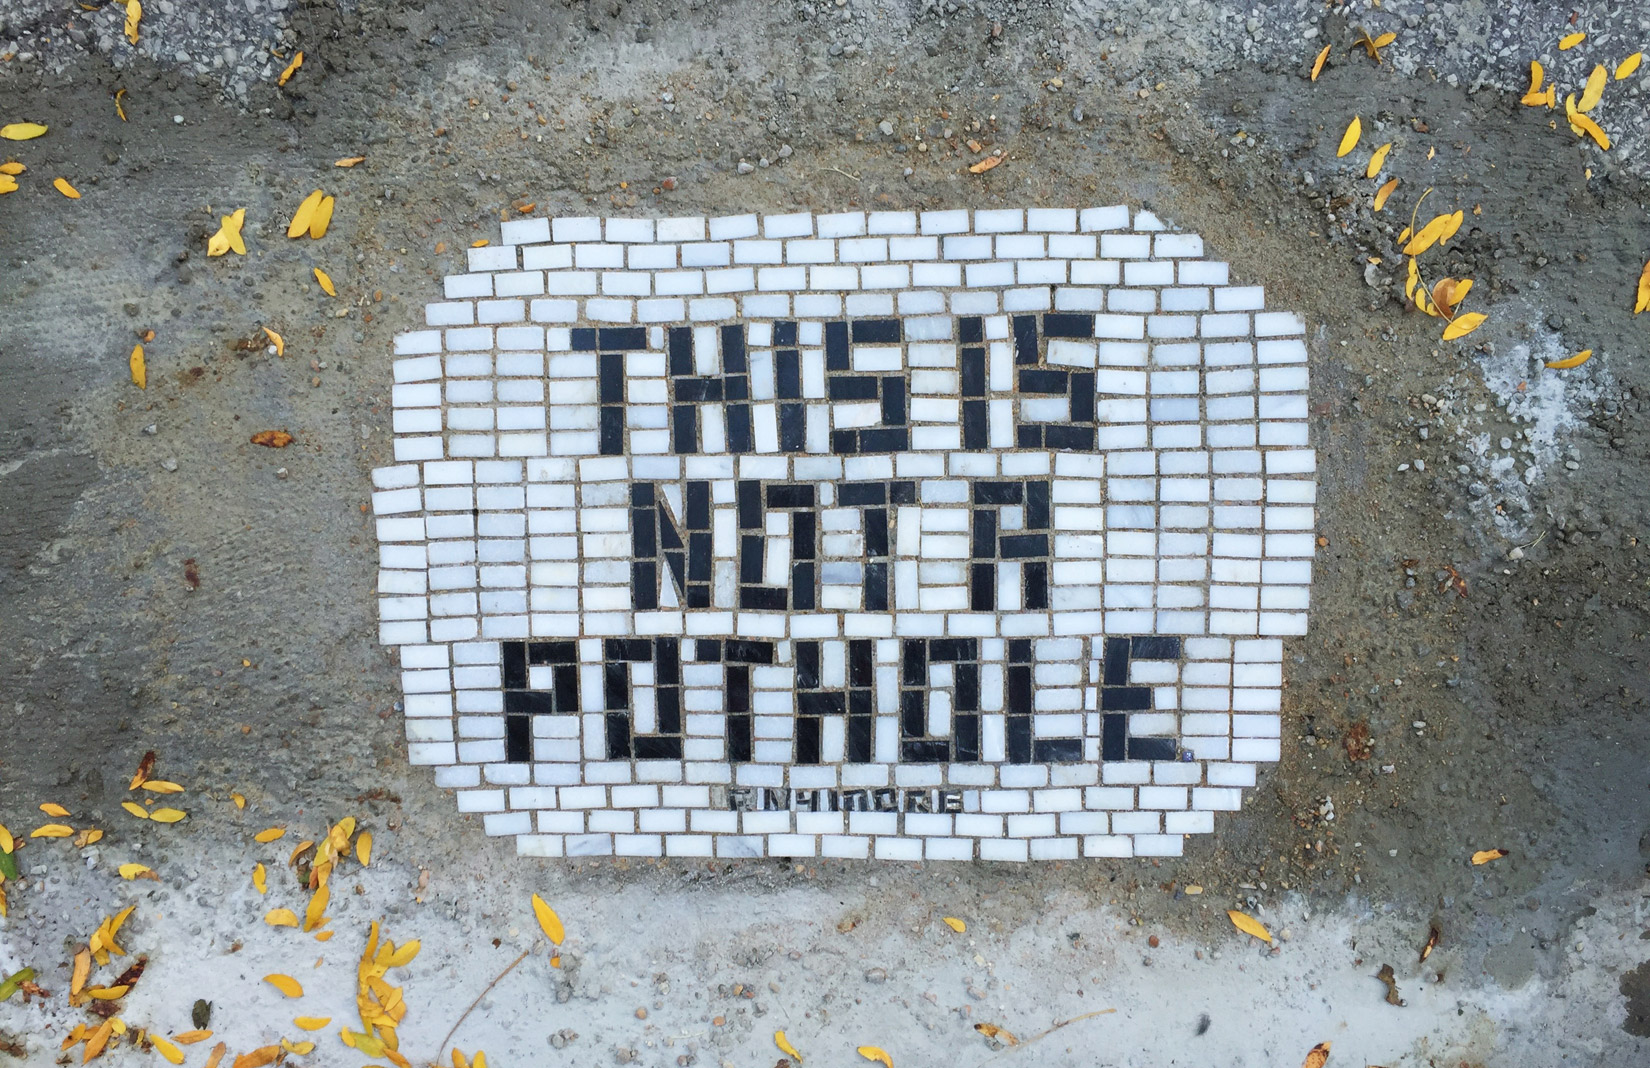 slogan-pothole-mosaic-by-jim-bachelor